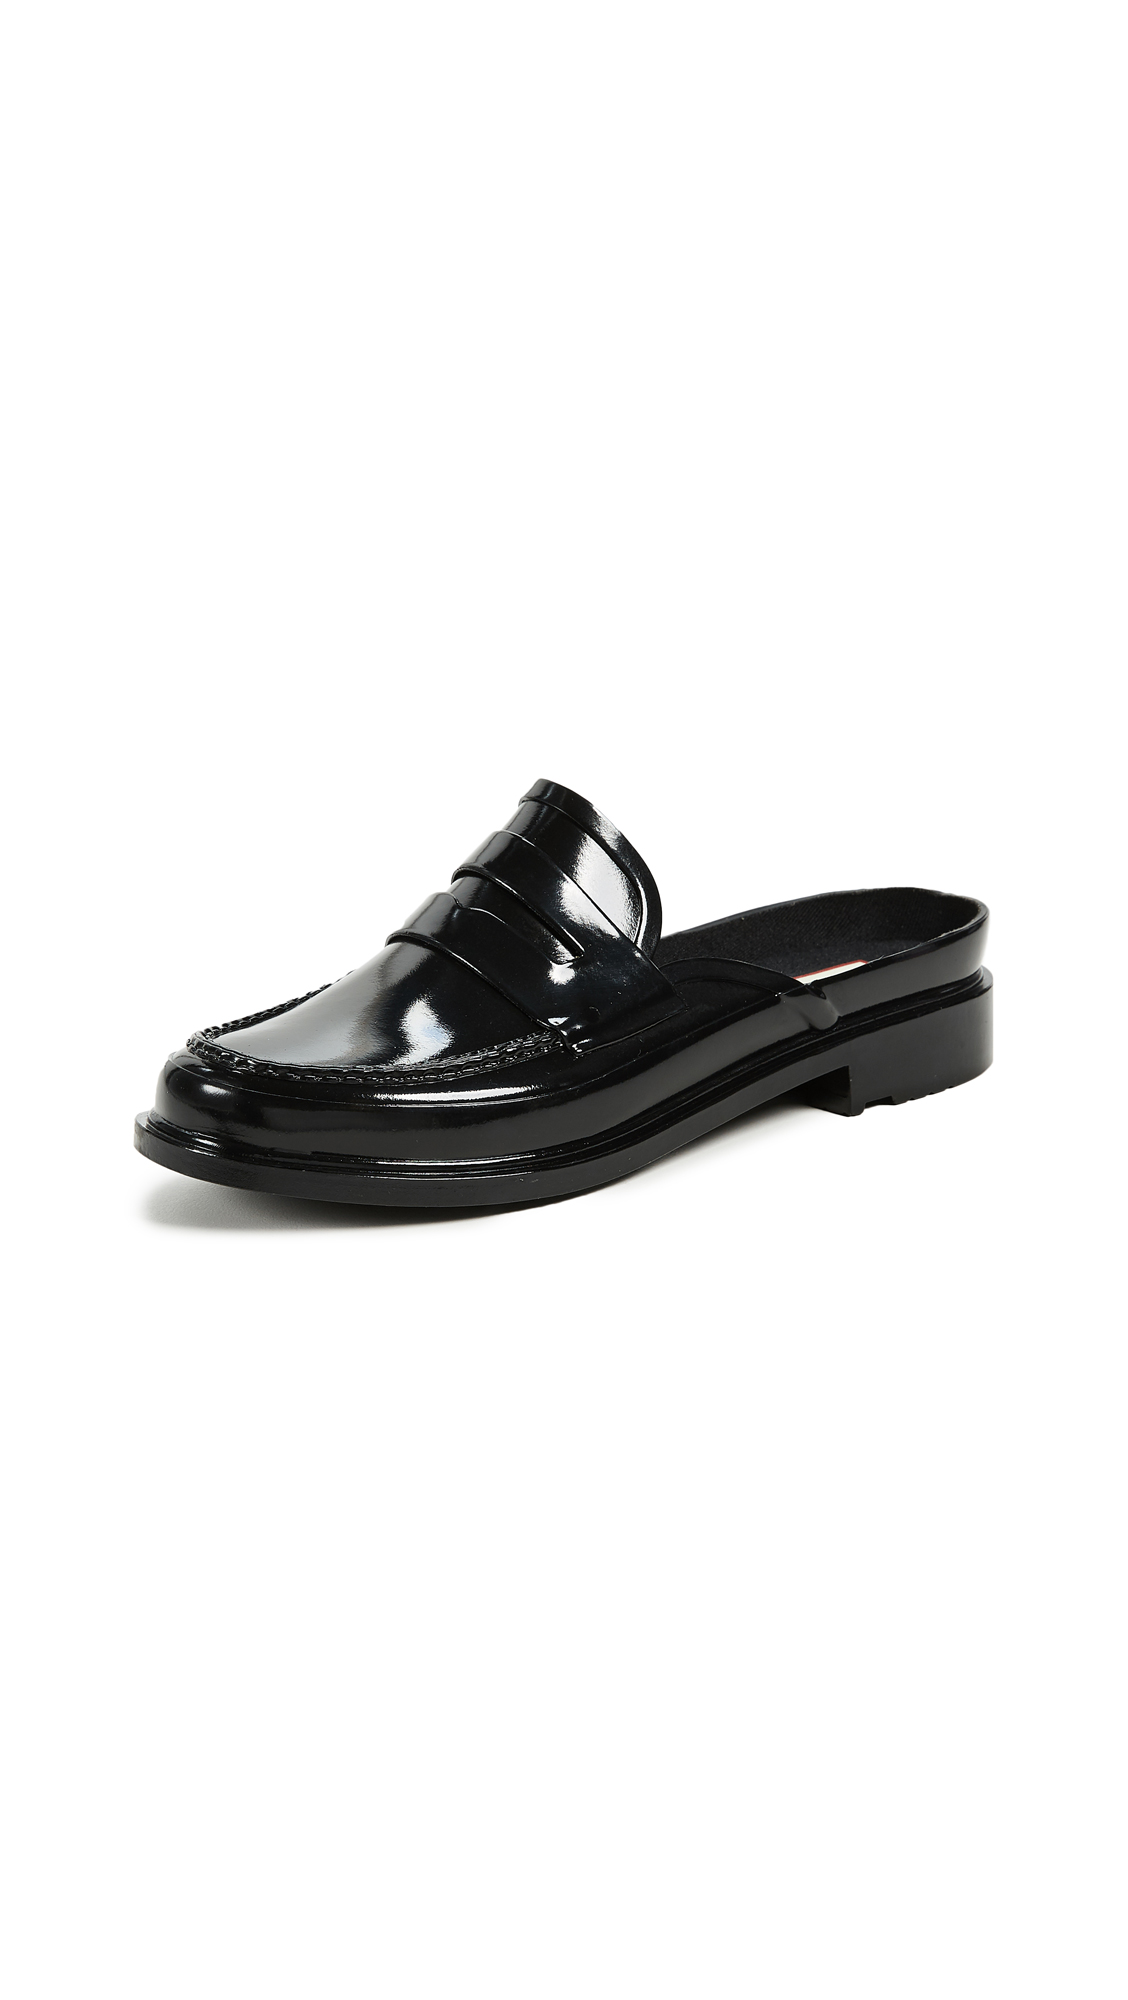 Hunter Boots Backless Gloss Penny Loafers - Black